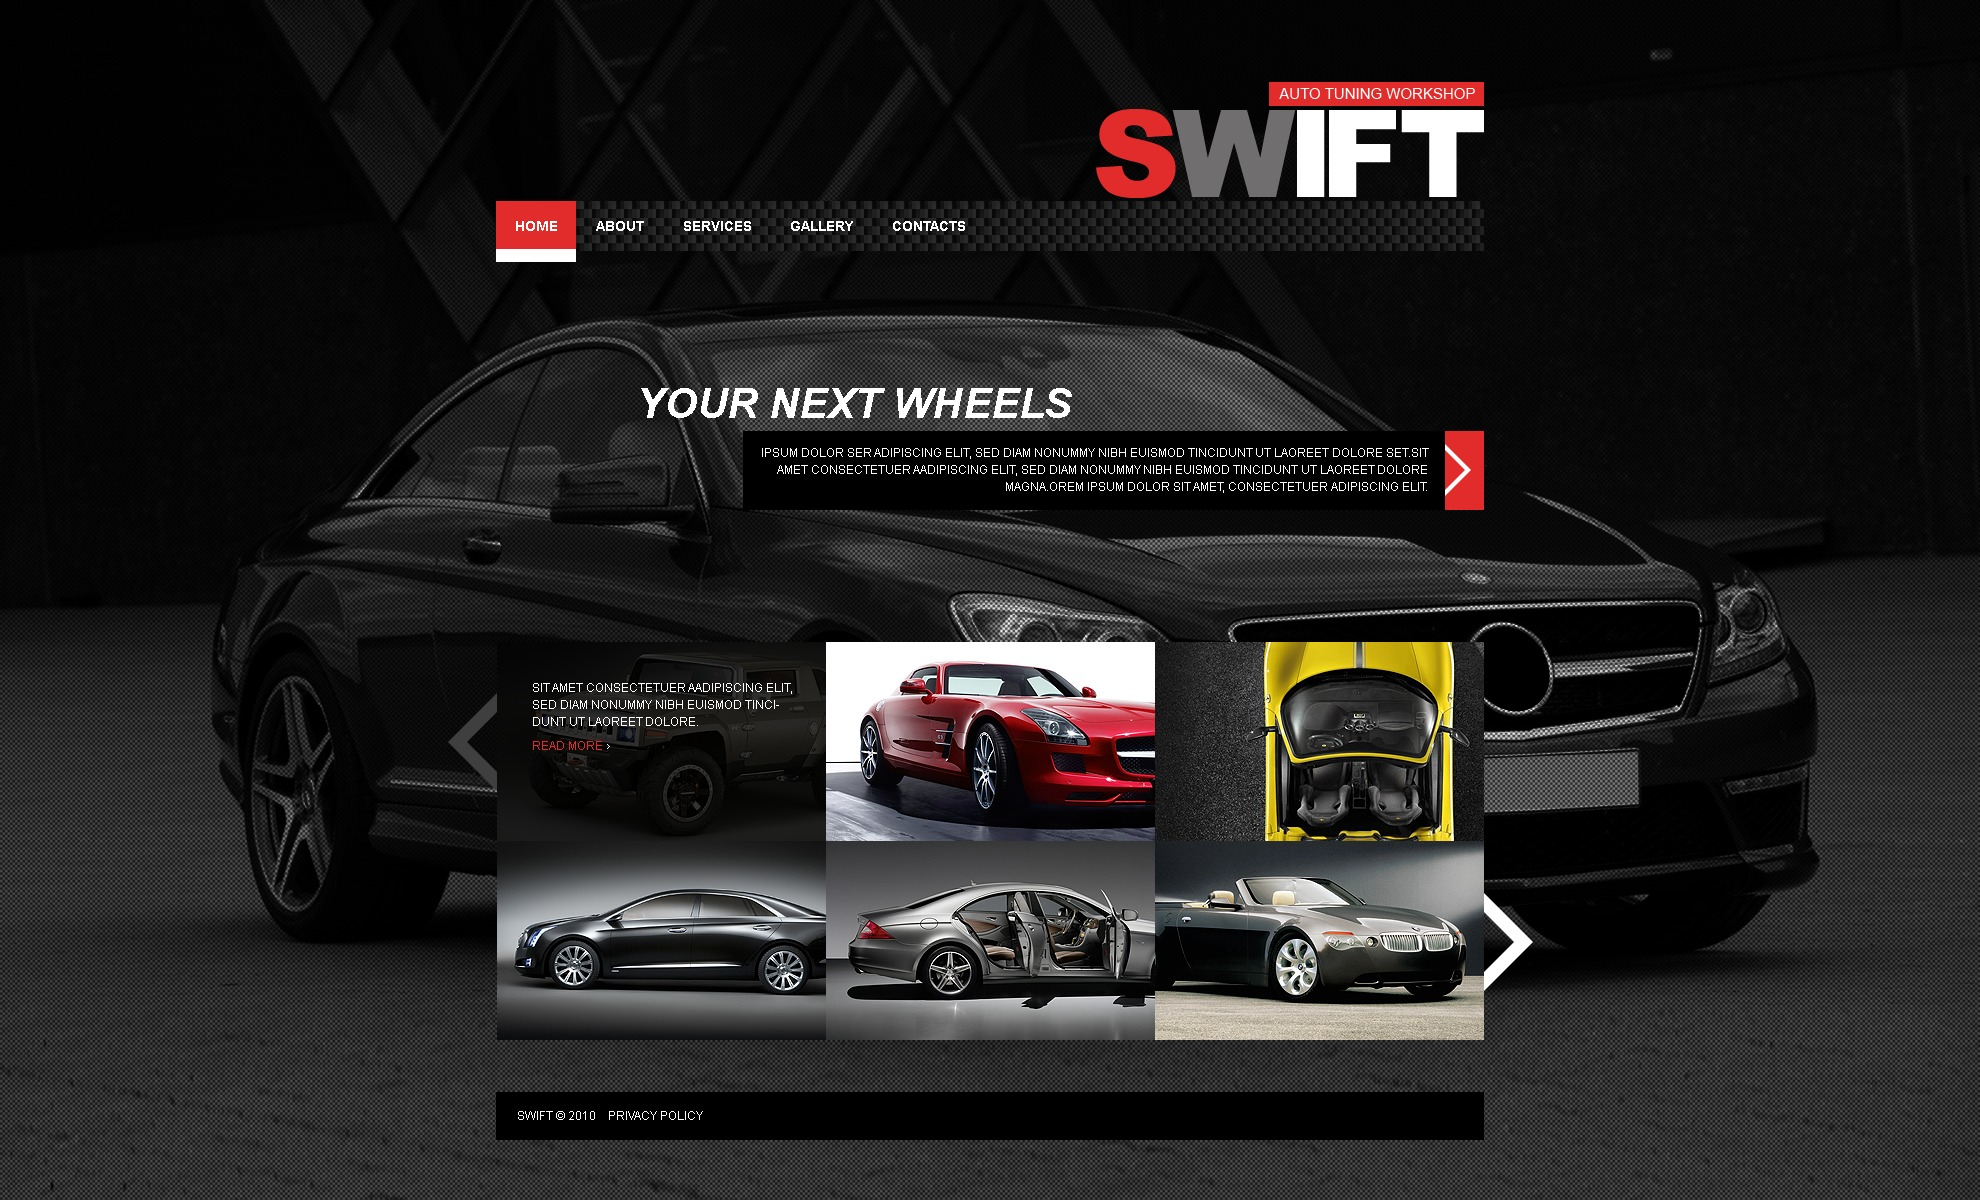 The Swift Cars Portal PSD Design 54182, one of the best PSD templates of its kind (cars, wide, jquery), also known as swift cars portal PSD template, auto PSD template, improvement PSD template, certified PSD template, exhibition solution PSD template, market PSD template, research PSD template, vendor PSD template, motor PSD template, price PSD template, Lexus transport PSD template, speed PSD template, jeep PSD template, ford PSD template, Audi Volvo Mercedes driving PSD template, off-road PSD template, racing PSD template, driver PSD template, track PSD template, race PSD template, urban PSD template, freeway PSD template, highway PSD template, road PSD template, vehicle PSD template, Porsche BMW spar PSD template, sell PSD template, o and related with swift cars portal, auto, improvement, certified, exhibition solution, market, research, vendor, motor, price, Lexus transport, speed, jeep, ford, Audi Volvo Mercedes driving, off-road, racing, driver, track, race, urban, freeway, highway, road, vehicle, Porsche BMW spar, sell, o, etc.